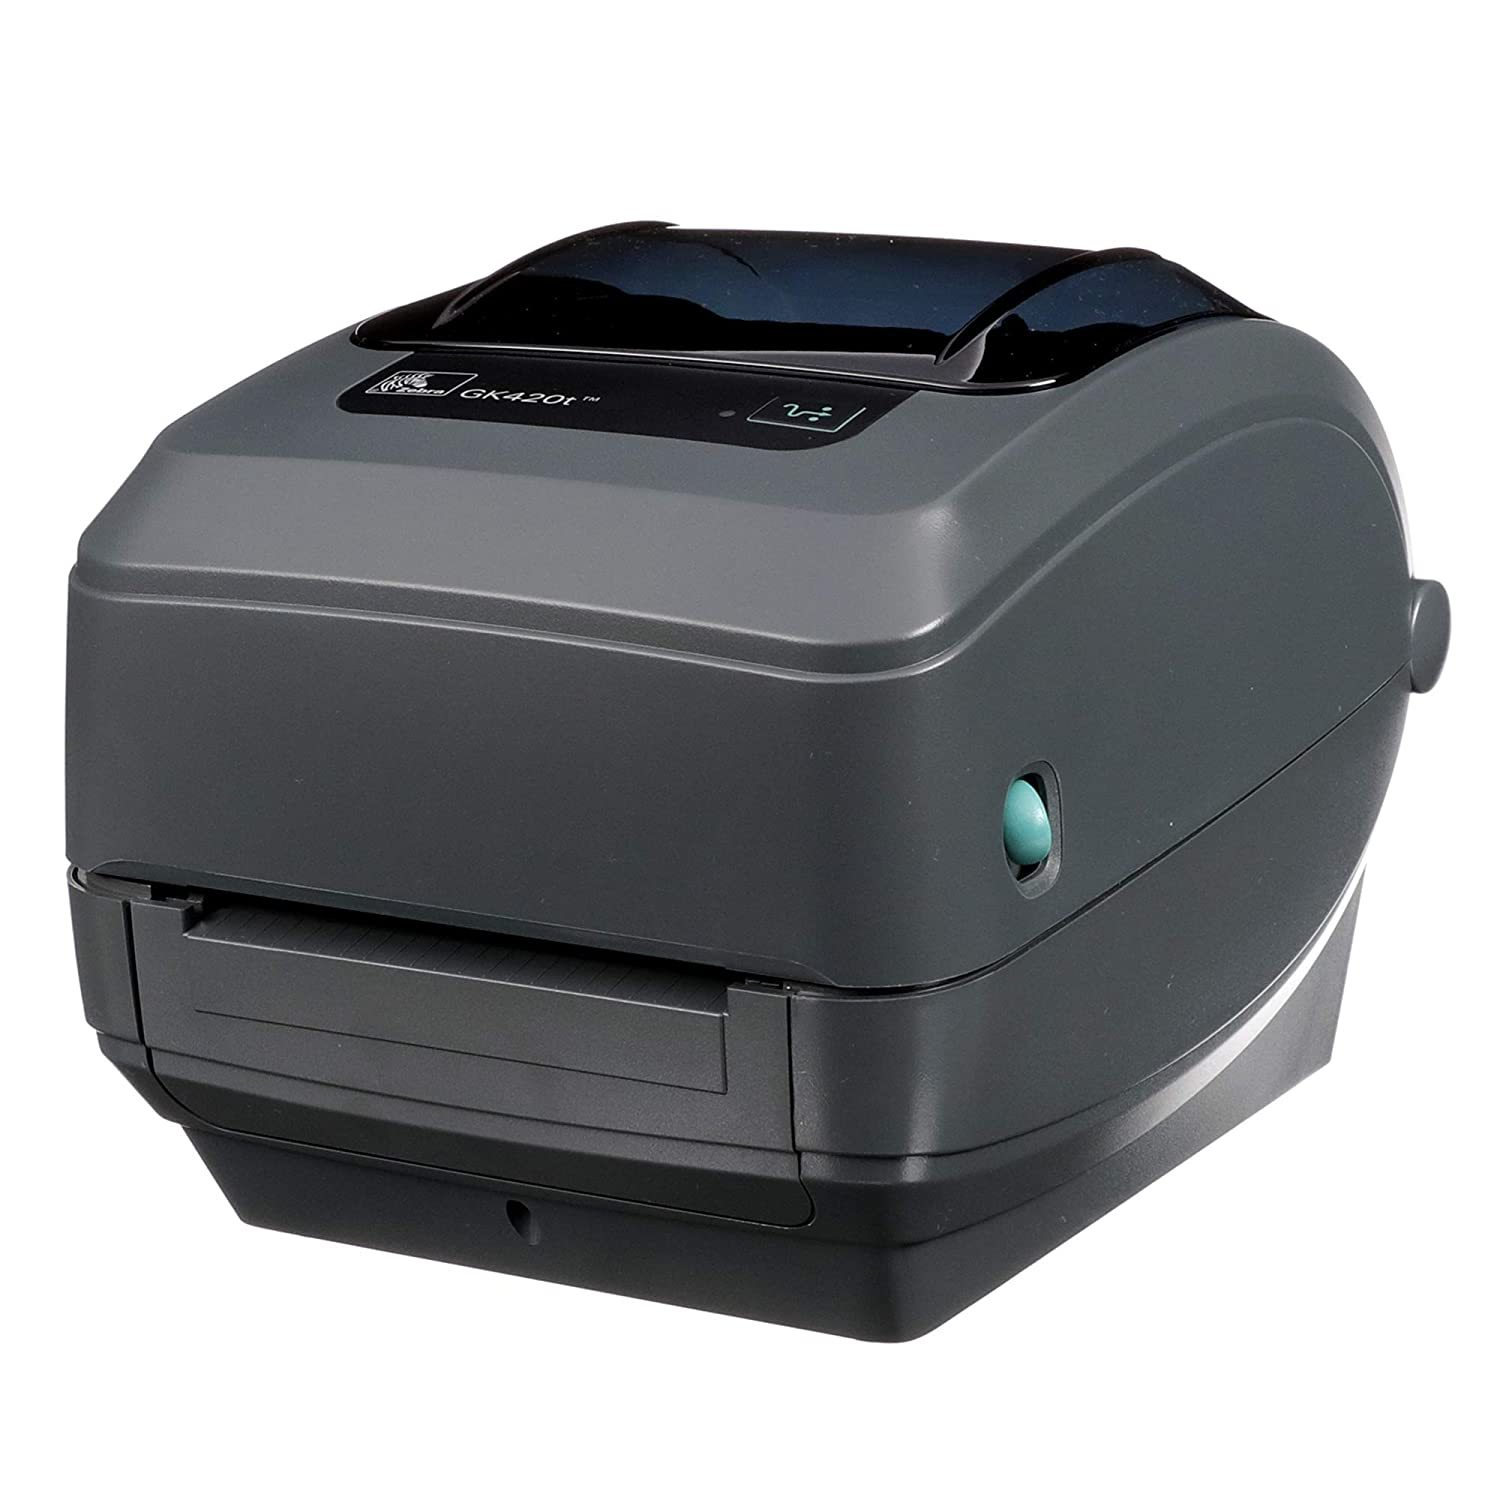 '- GK420t Thermal Transfer Desktop Printer for labels, Receipts, Barcodes, Tags, and Wrist Bands - Print Width of 4 in - USB, Serial, and Parallel Connectivity - GK42-102510-000